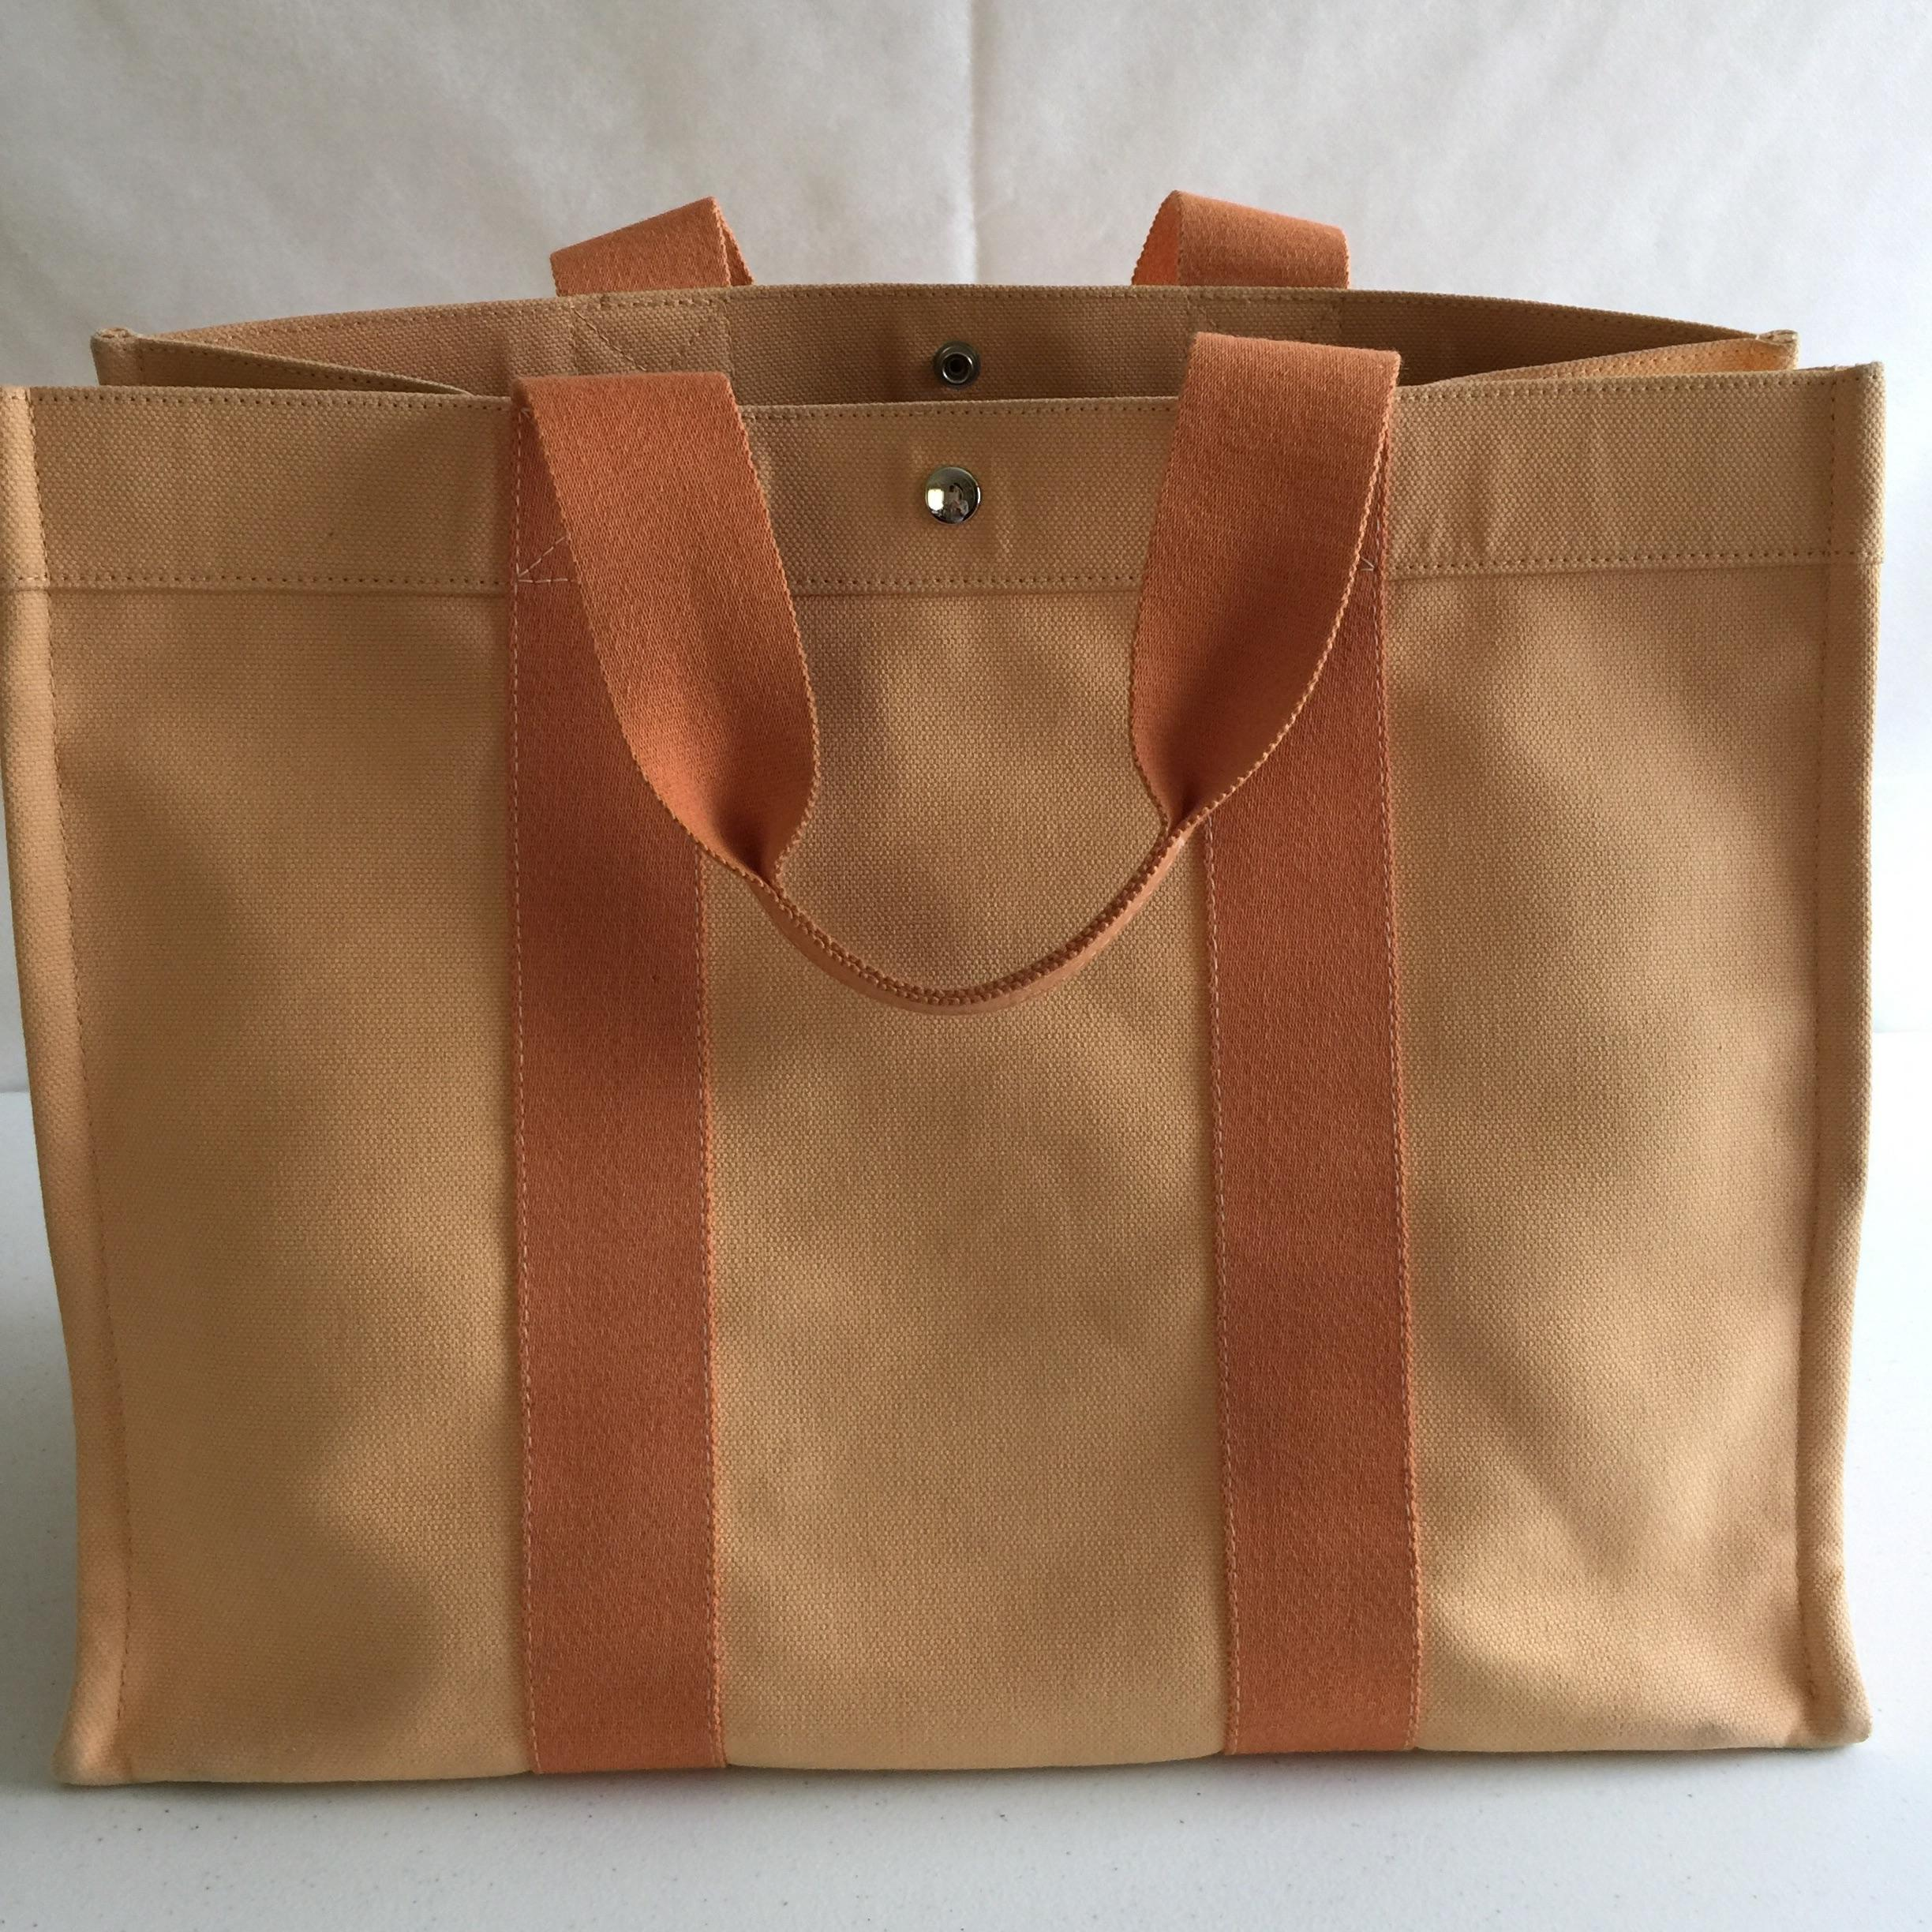 Hermès Bora Tote Orange Beach Bag | Beach Bags on Sale